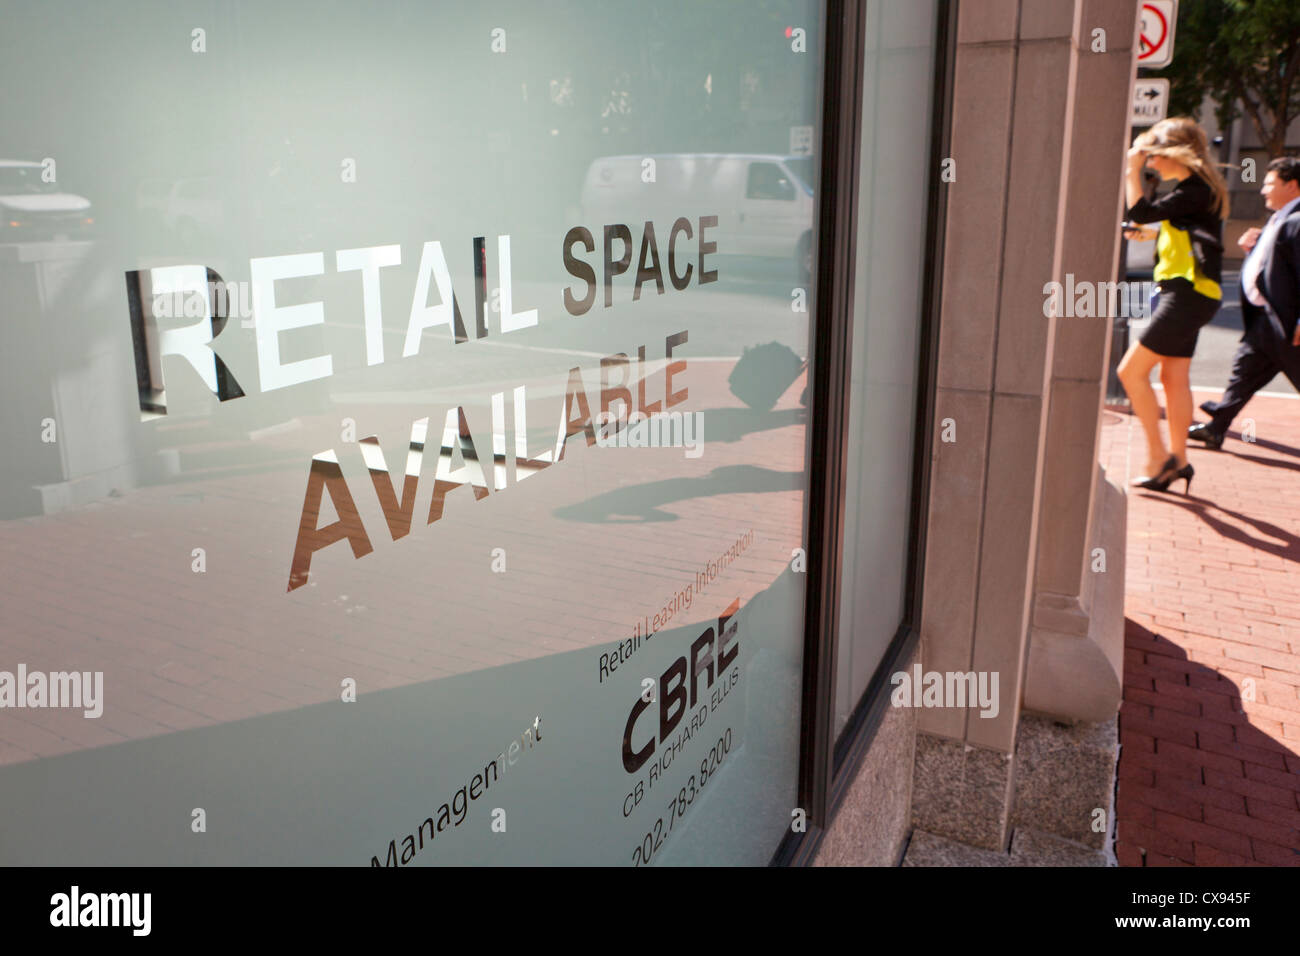 Retail Space Available sign on window - Stock Image